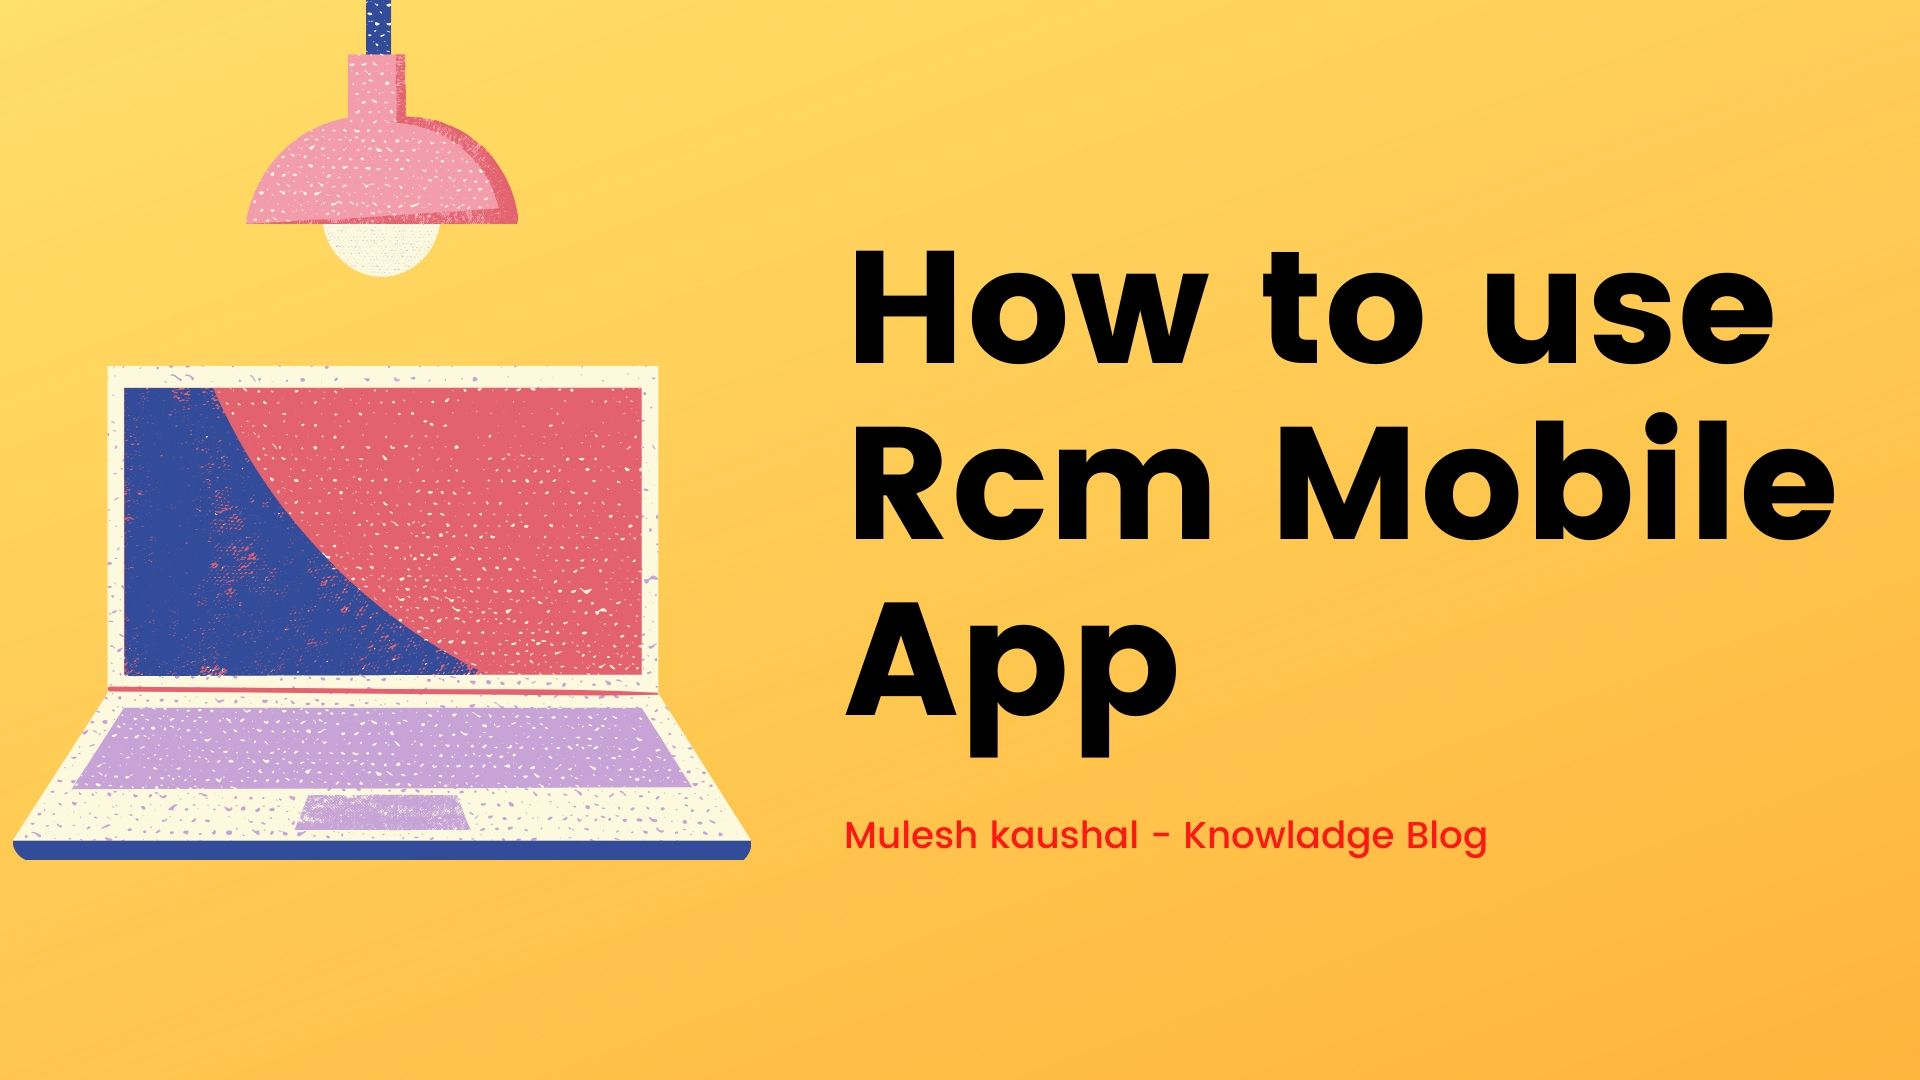 Rcm business mobile app